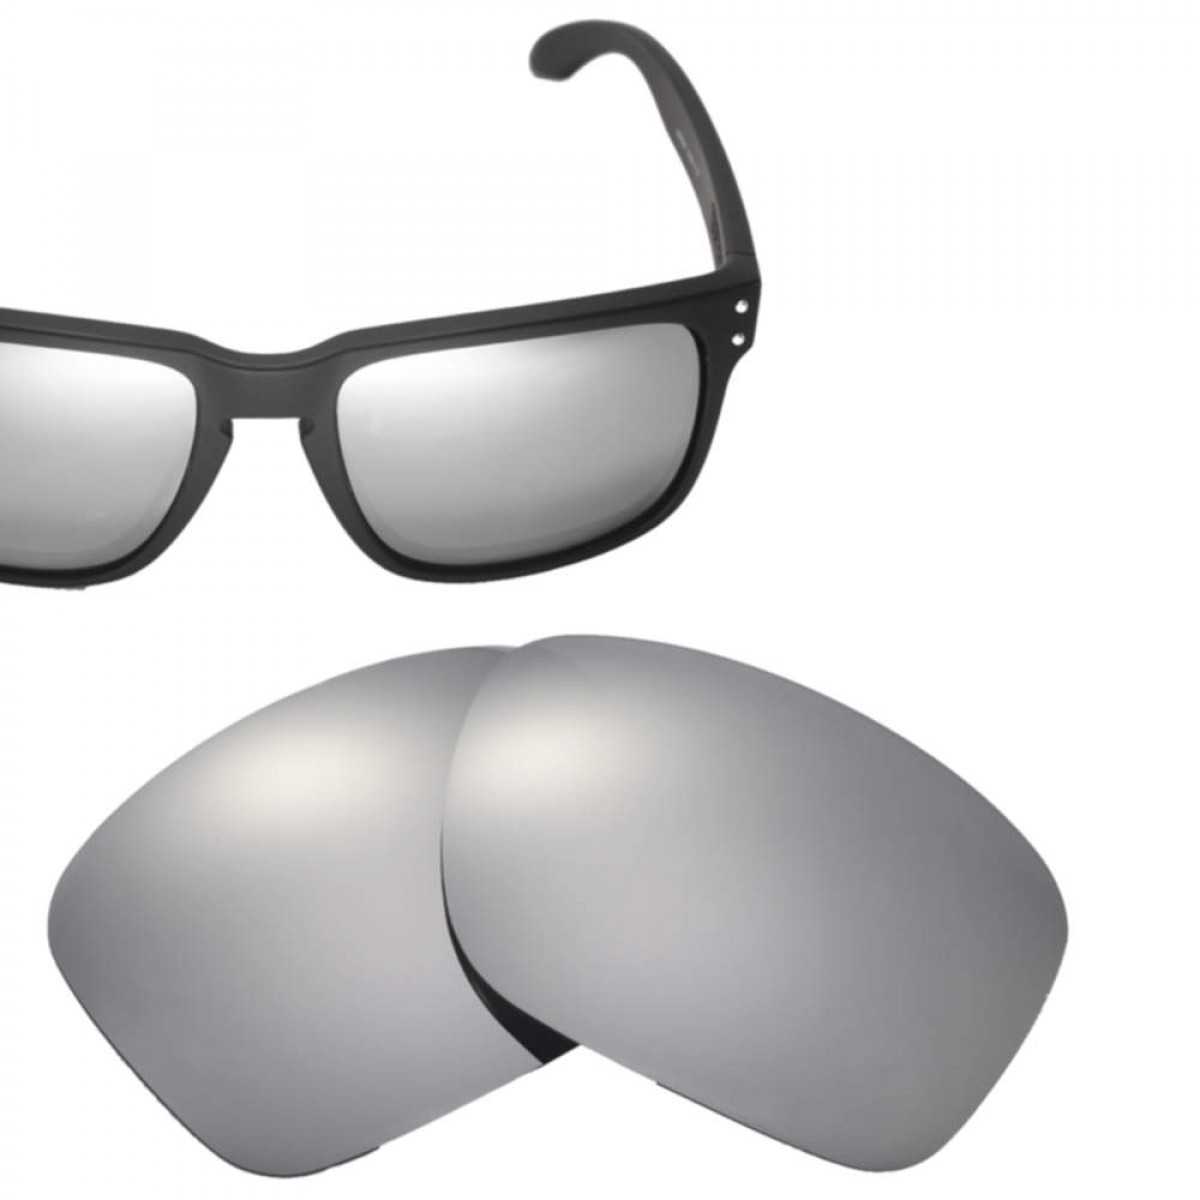 b26bd13a0c Cofery Lenses Store Cofery Replacement Lenses for Oakley Holbrook Sunglasses